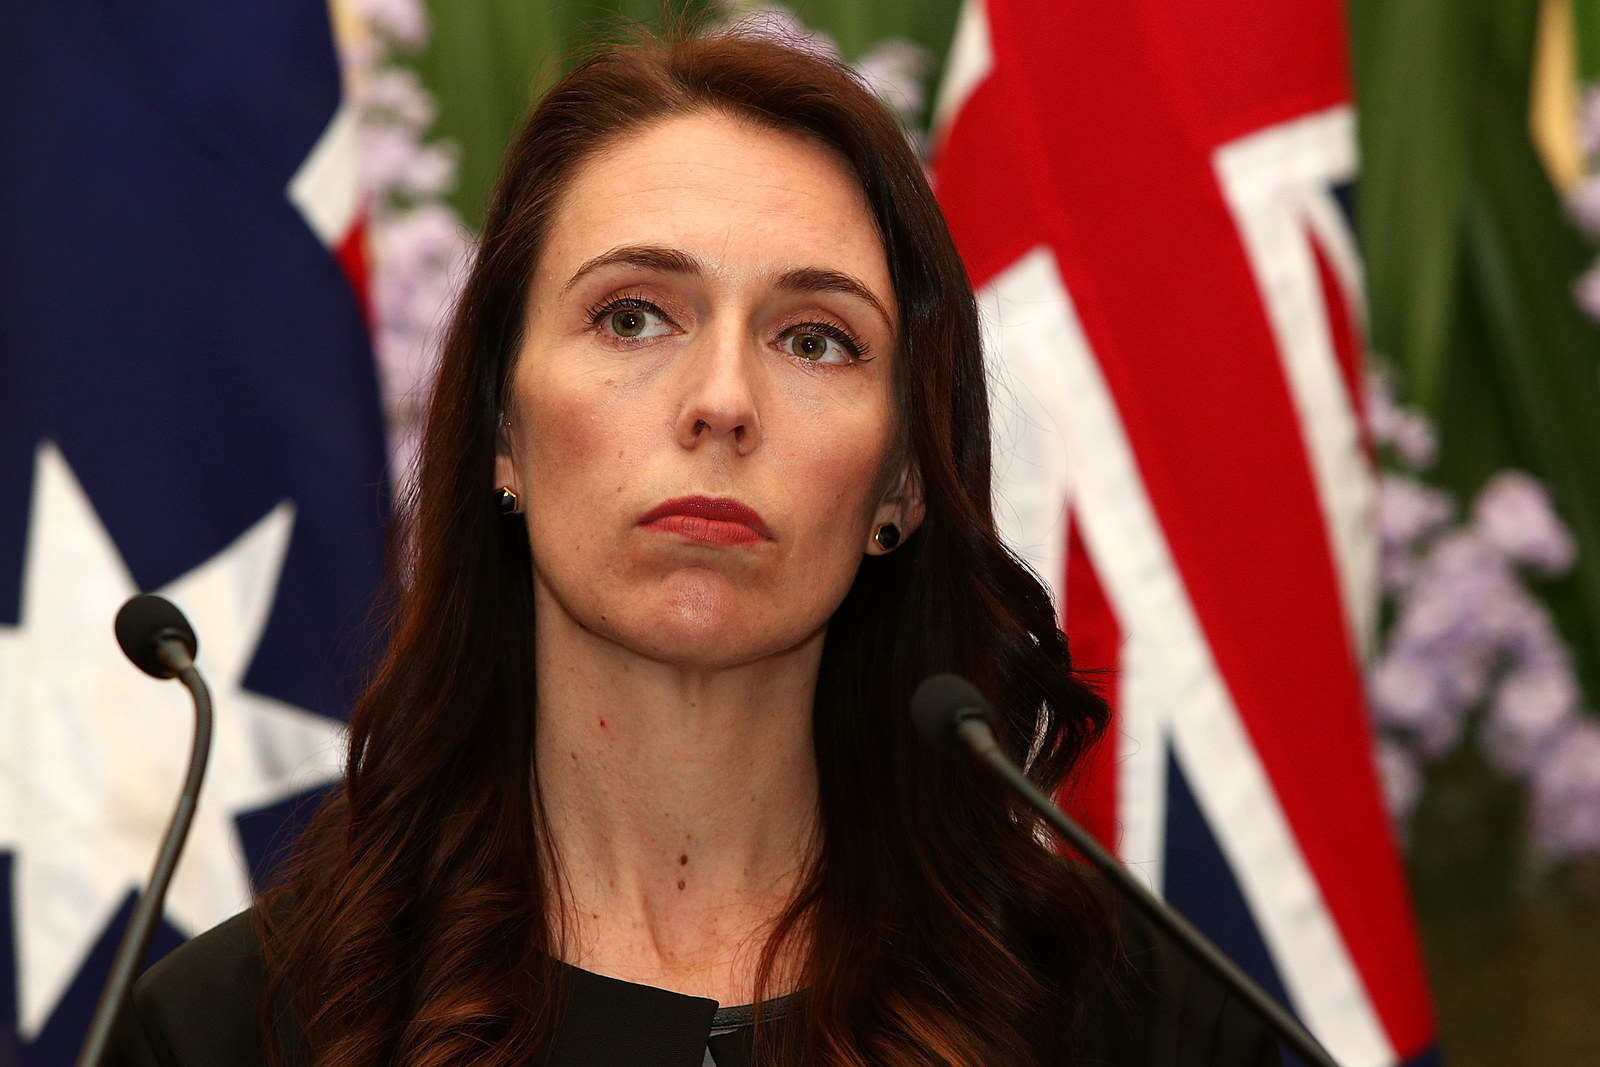 Jacinda Ardern Pinterest: Uh So New Zealand Says It Can't Find Any Russian Spies To